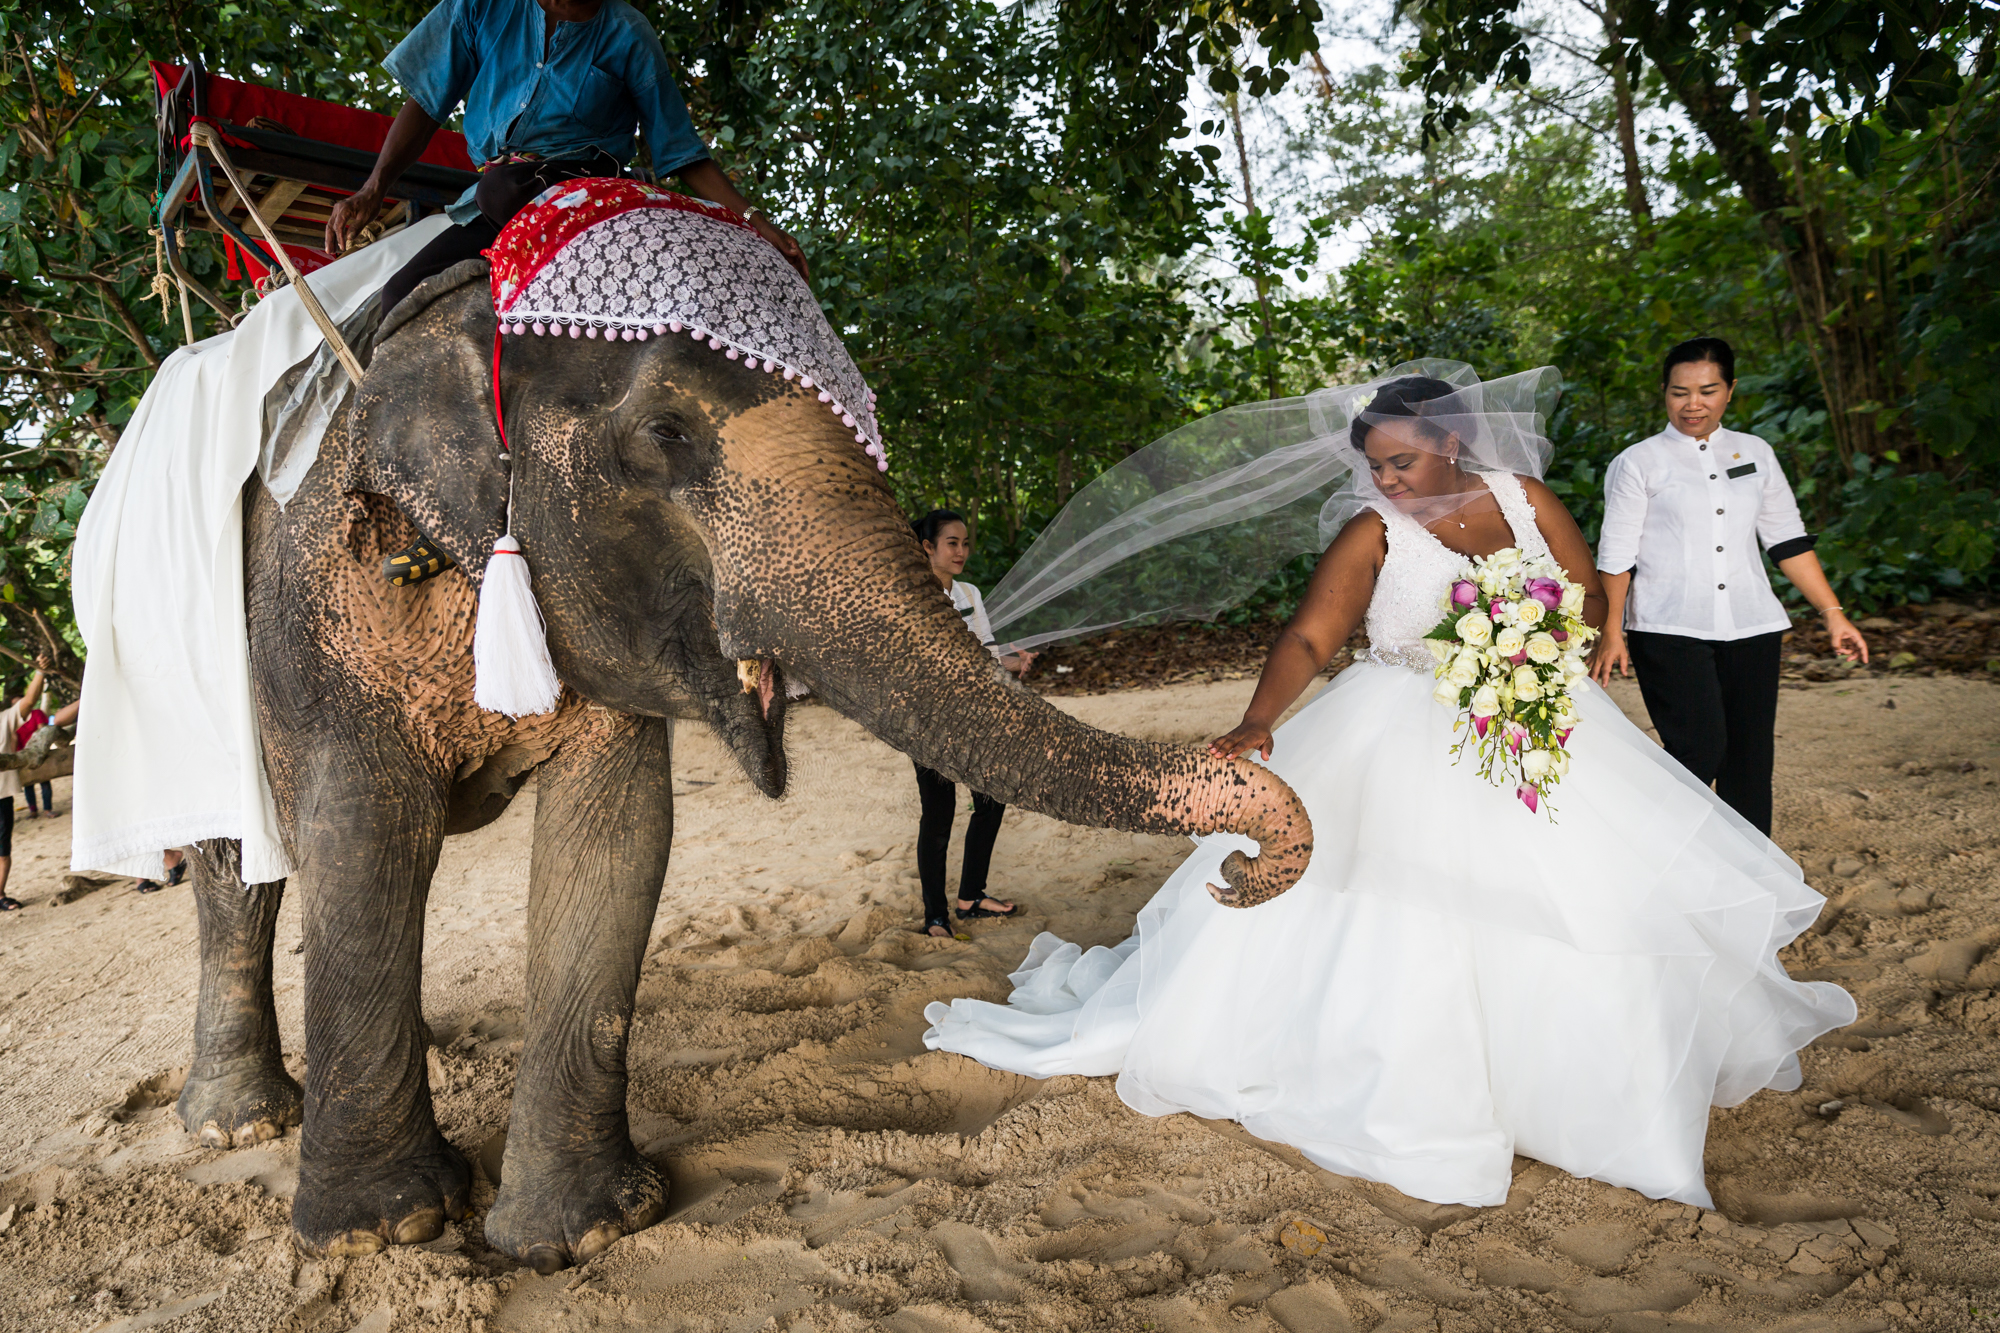 Bride with elephant for an article on destination wedding planning tips